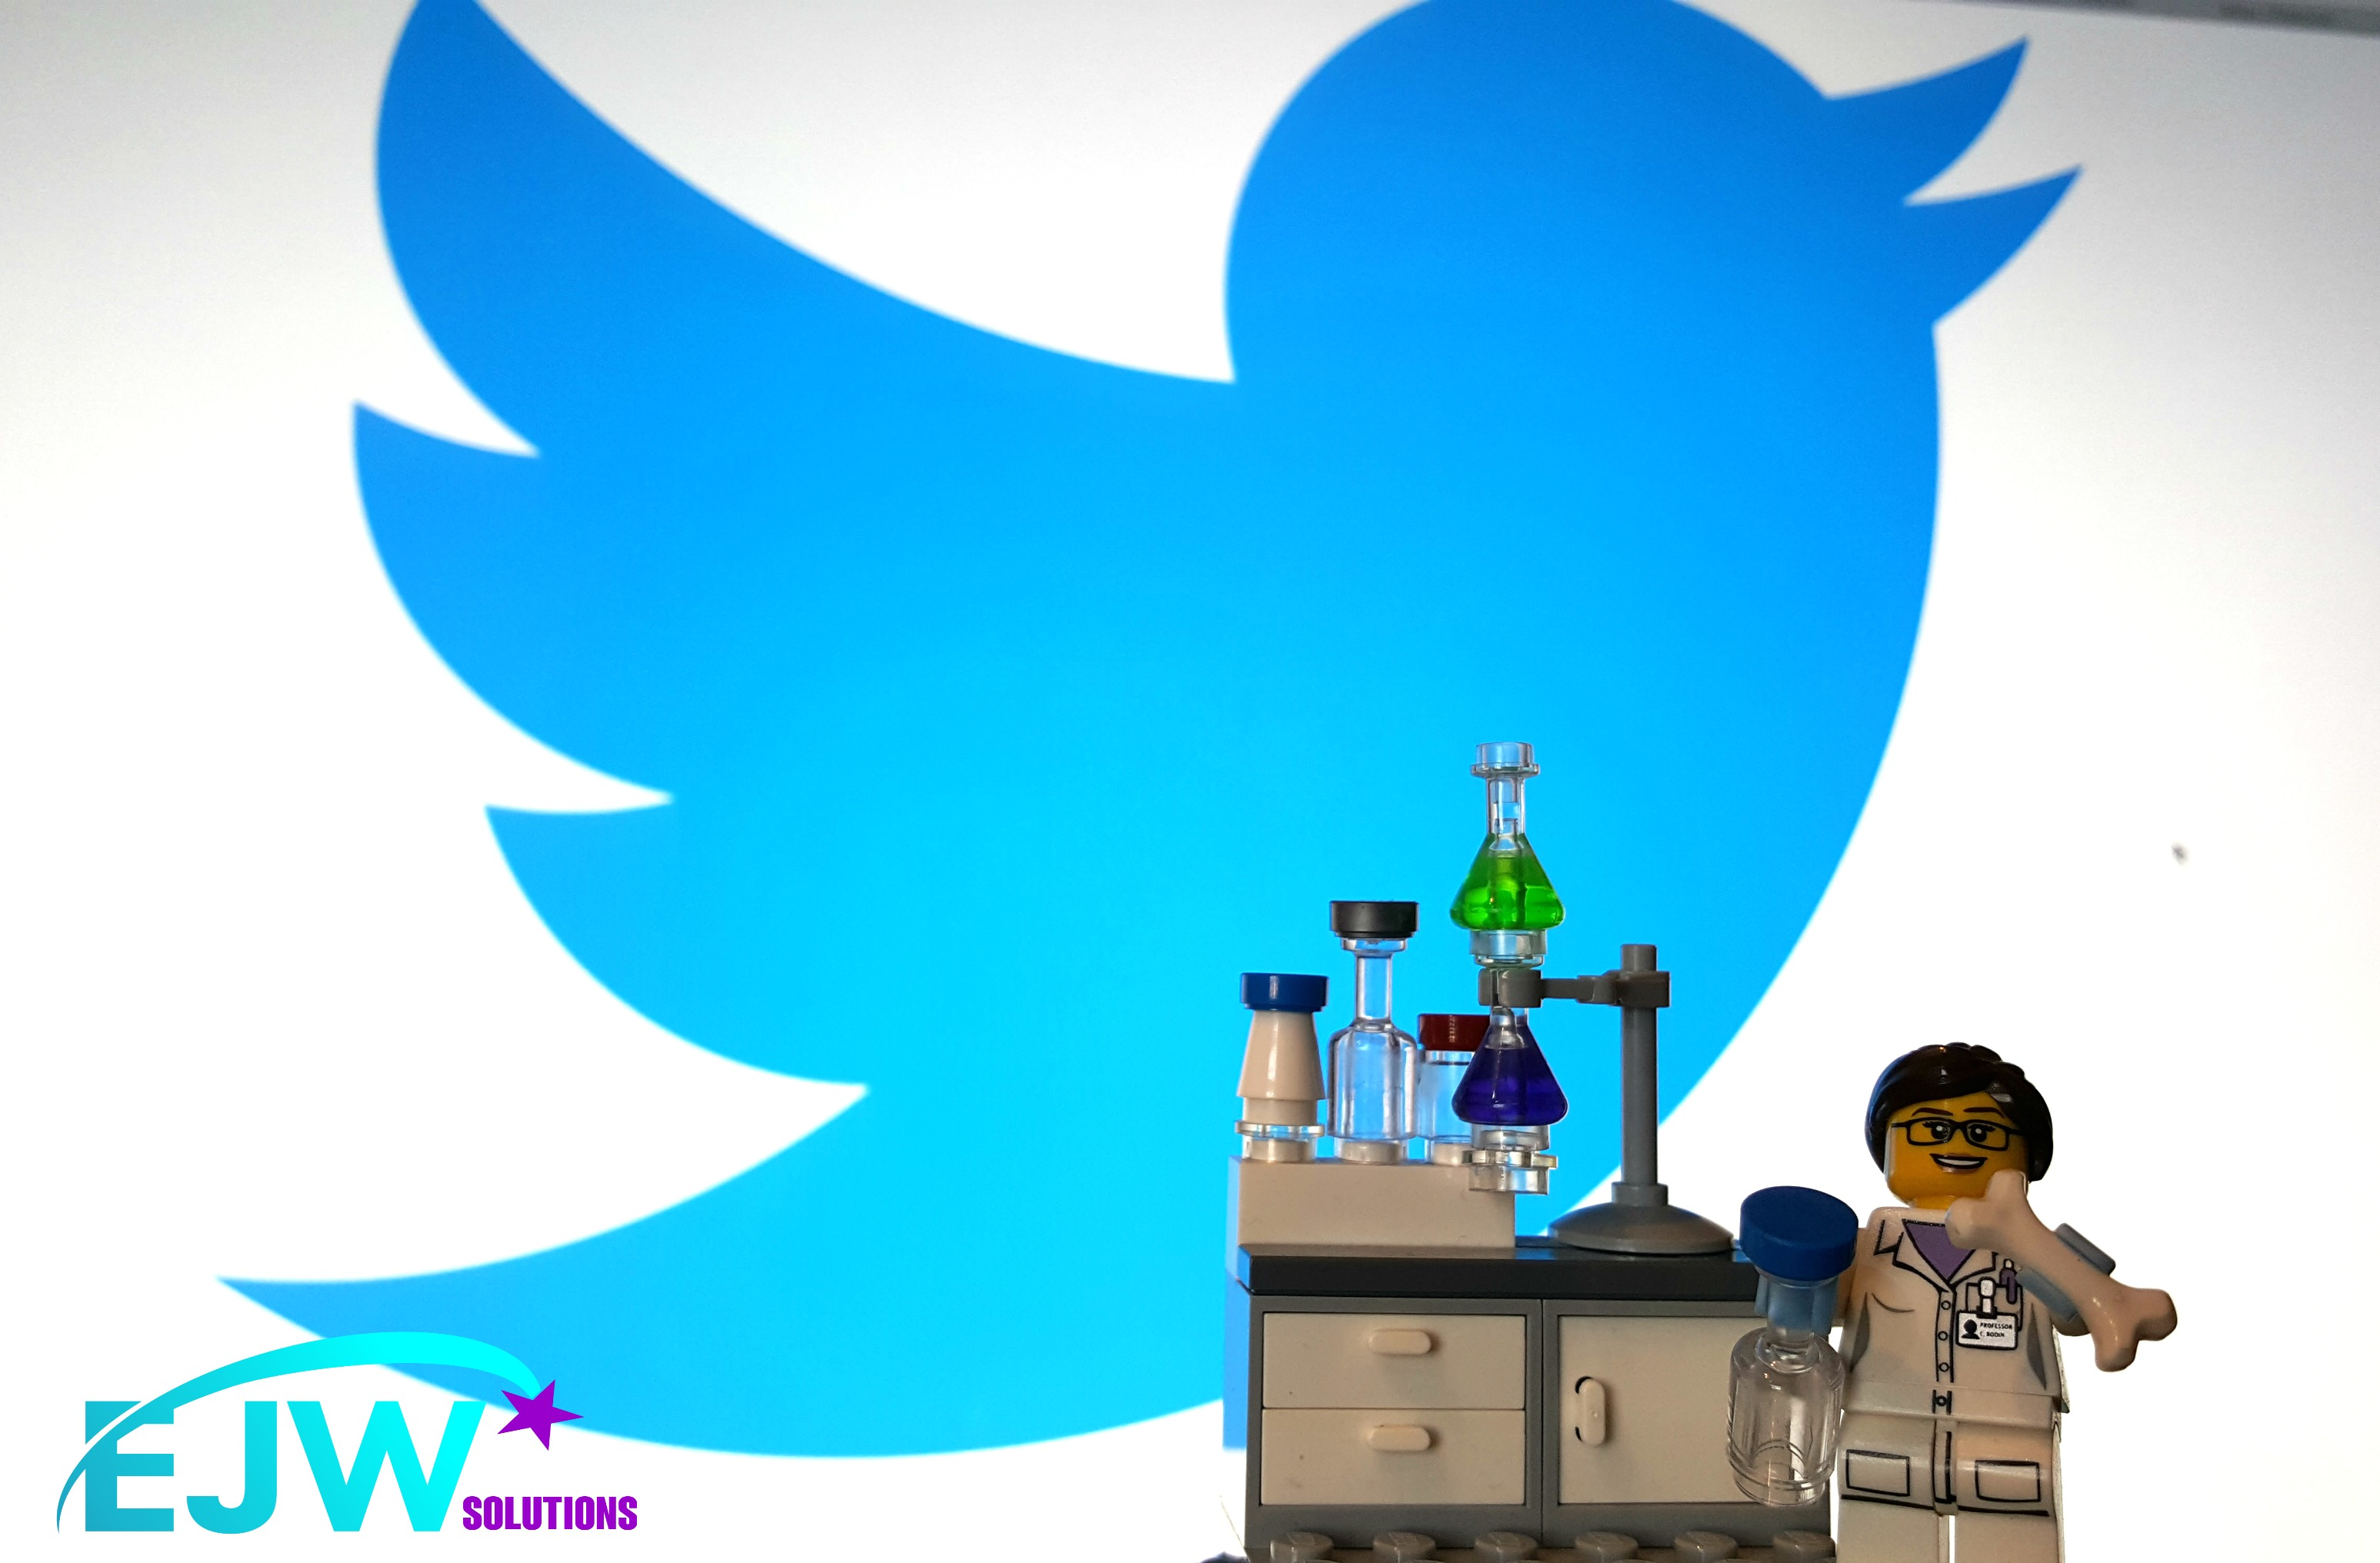 scientist by a twitter logo